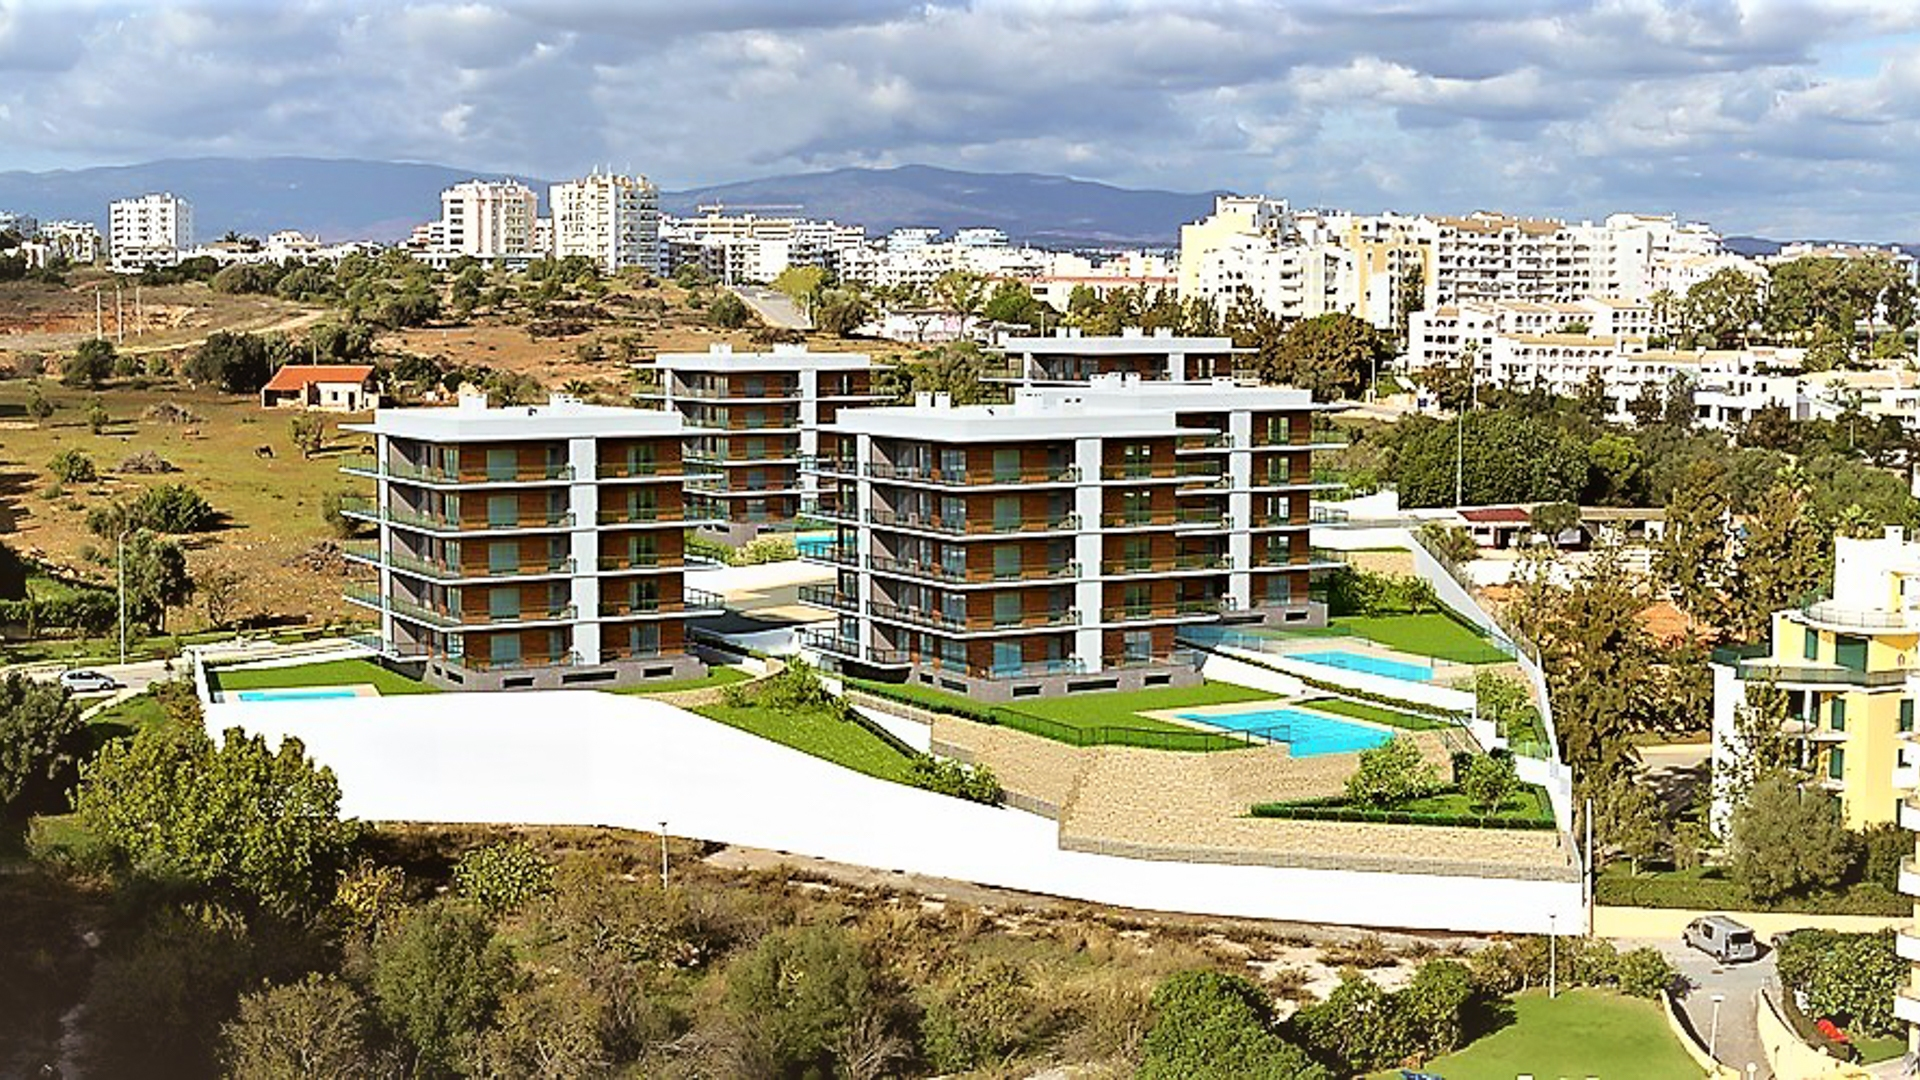 Off plan - Modern one bedroom apartments with partial sea views in Praia da Rocha, Portimão | LG1427 Small closed condominium with private underground parking and private swimming pool. Located a short walk from the beach, in Portimão. Fully equipped and modern with south facing views towards the sea.